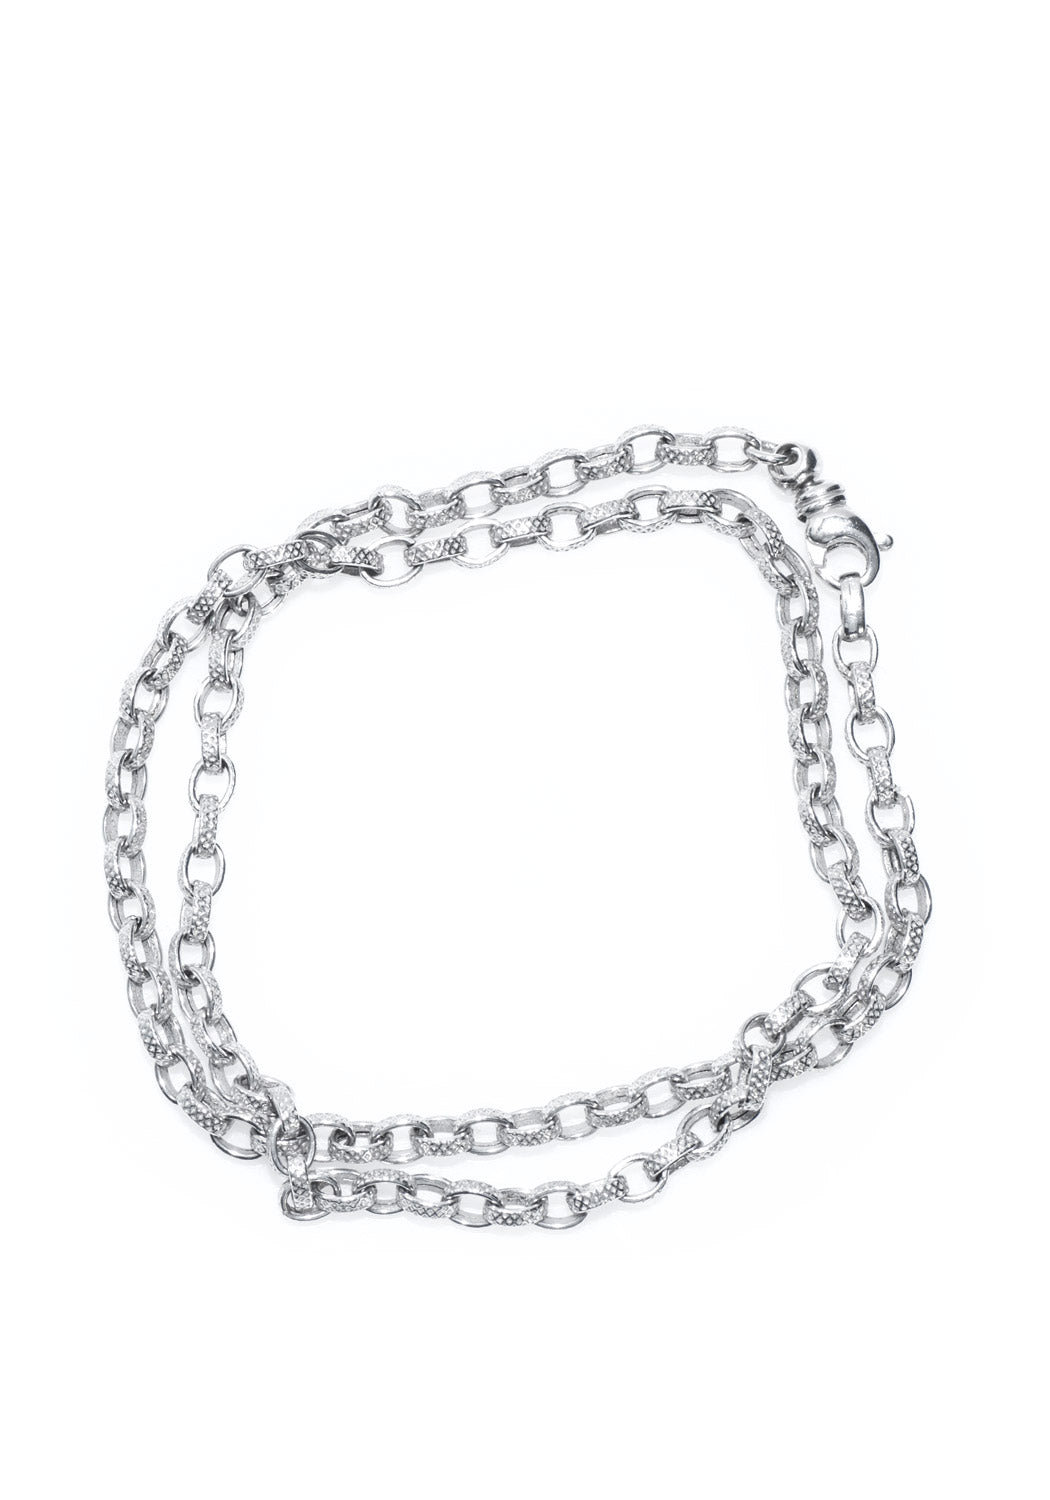 "Marchisio 15"" White Gold Link Necklace"